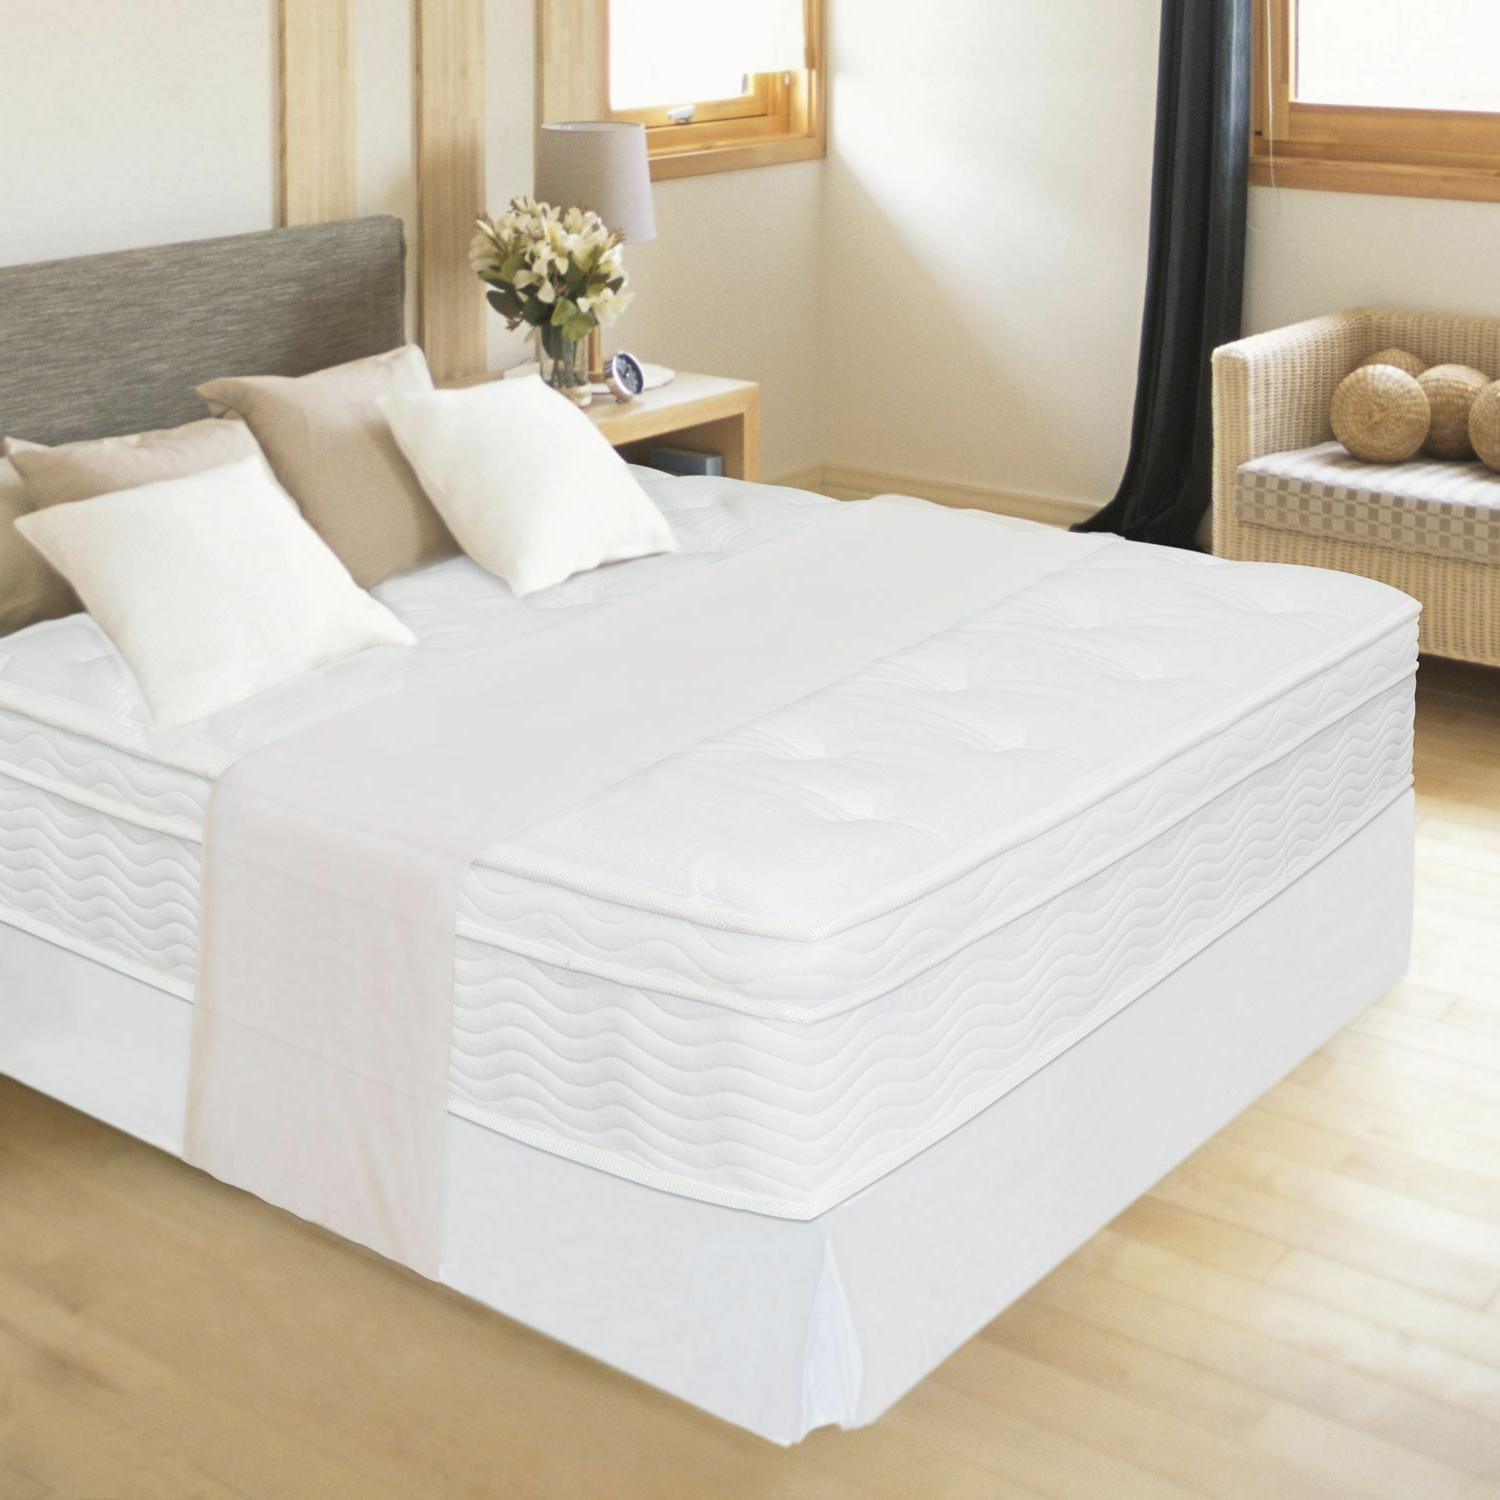 "NEW 12"" NIGHT THERAPY EURO BOX TOP SPRING MATTRESS - FULL BE"